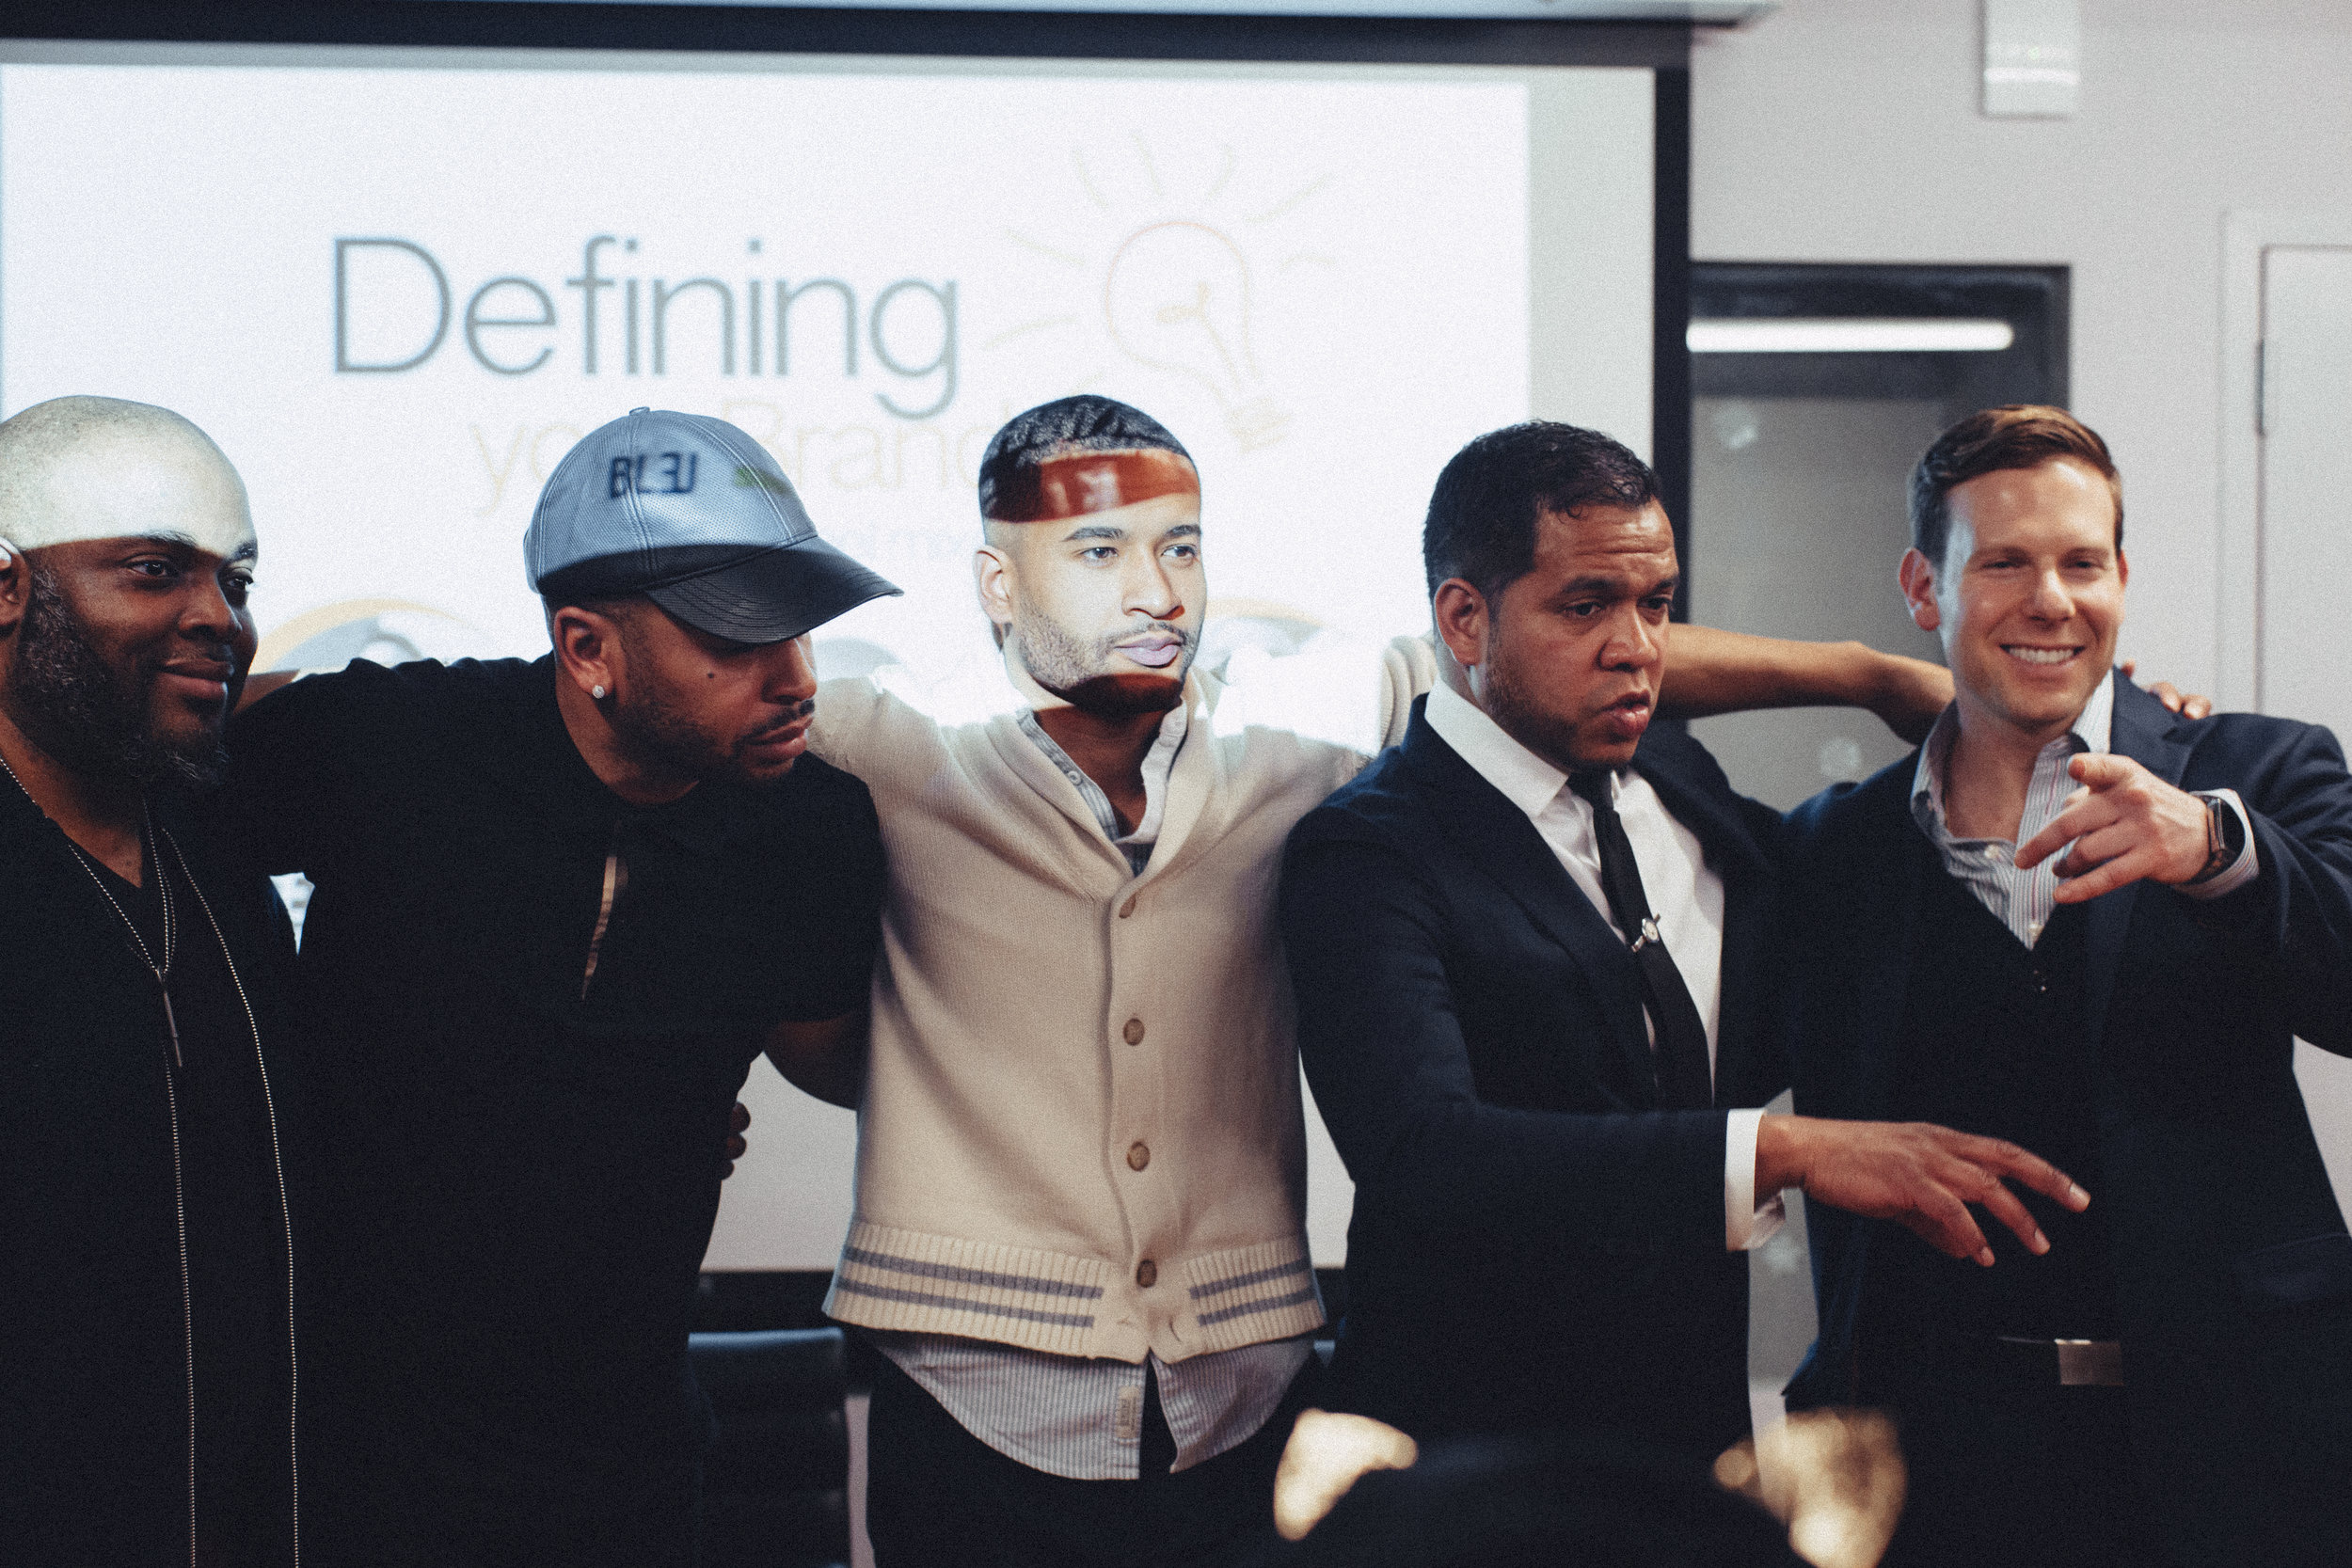 DEFINING YOUR BRAND \ DEVON JOHNSON \ CHRIS FINDLEY \ JOHNNY NUNEZ \ JESSE KIRSHBAUM